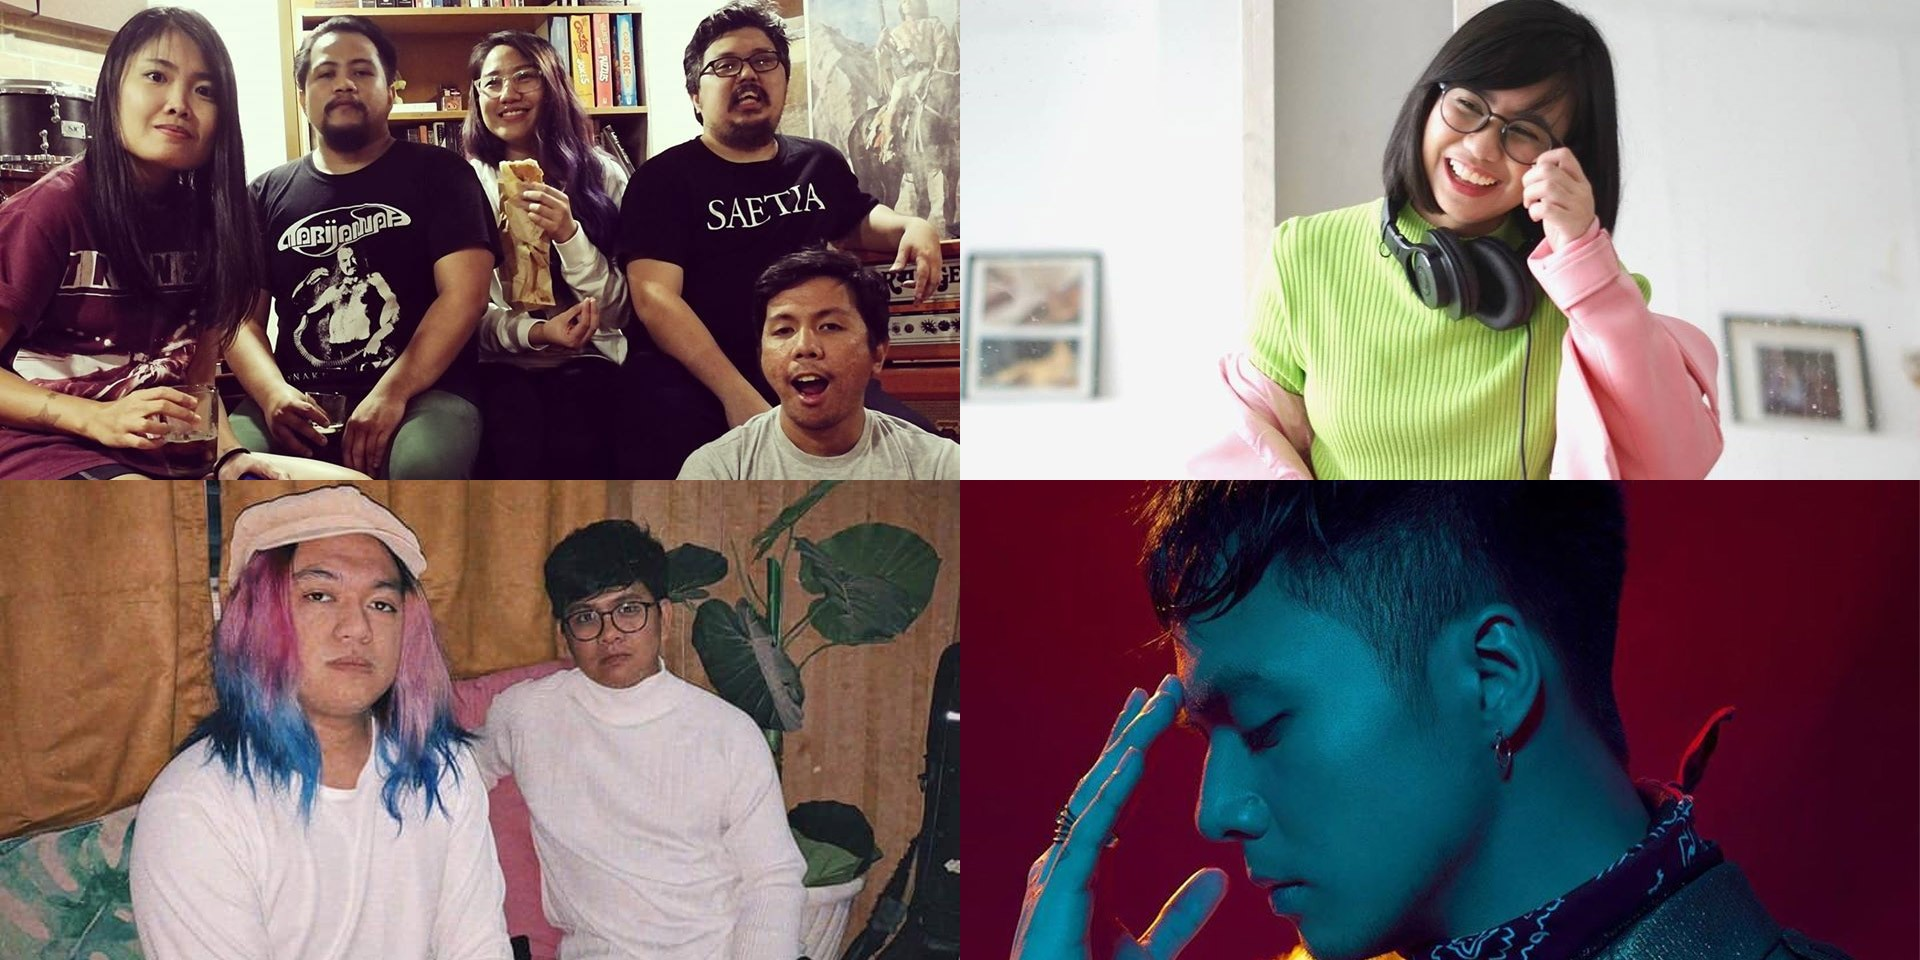 Irrevocable, Pamcy, Mandaue Nights, Sam Concepcion, and more release new music – listen